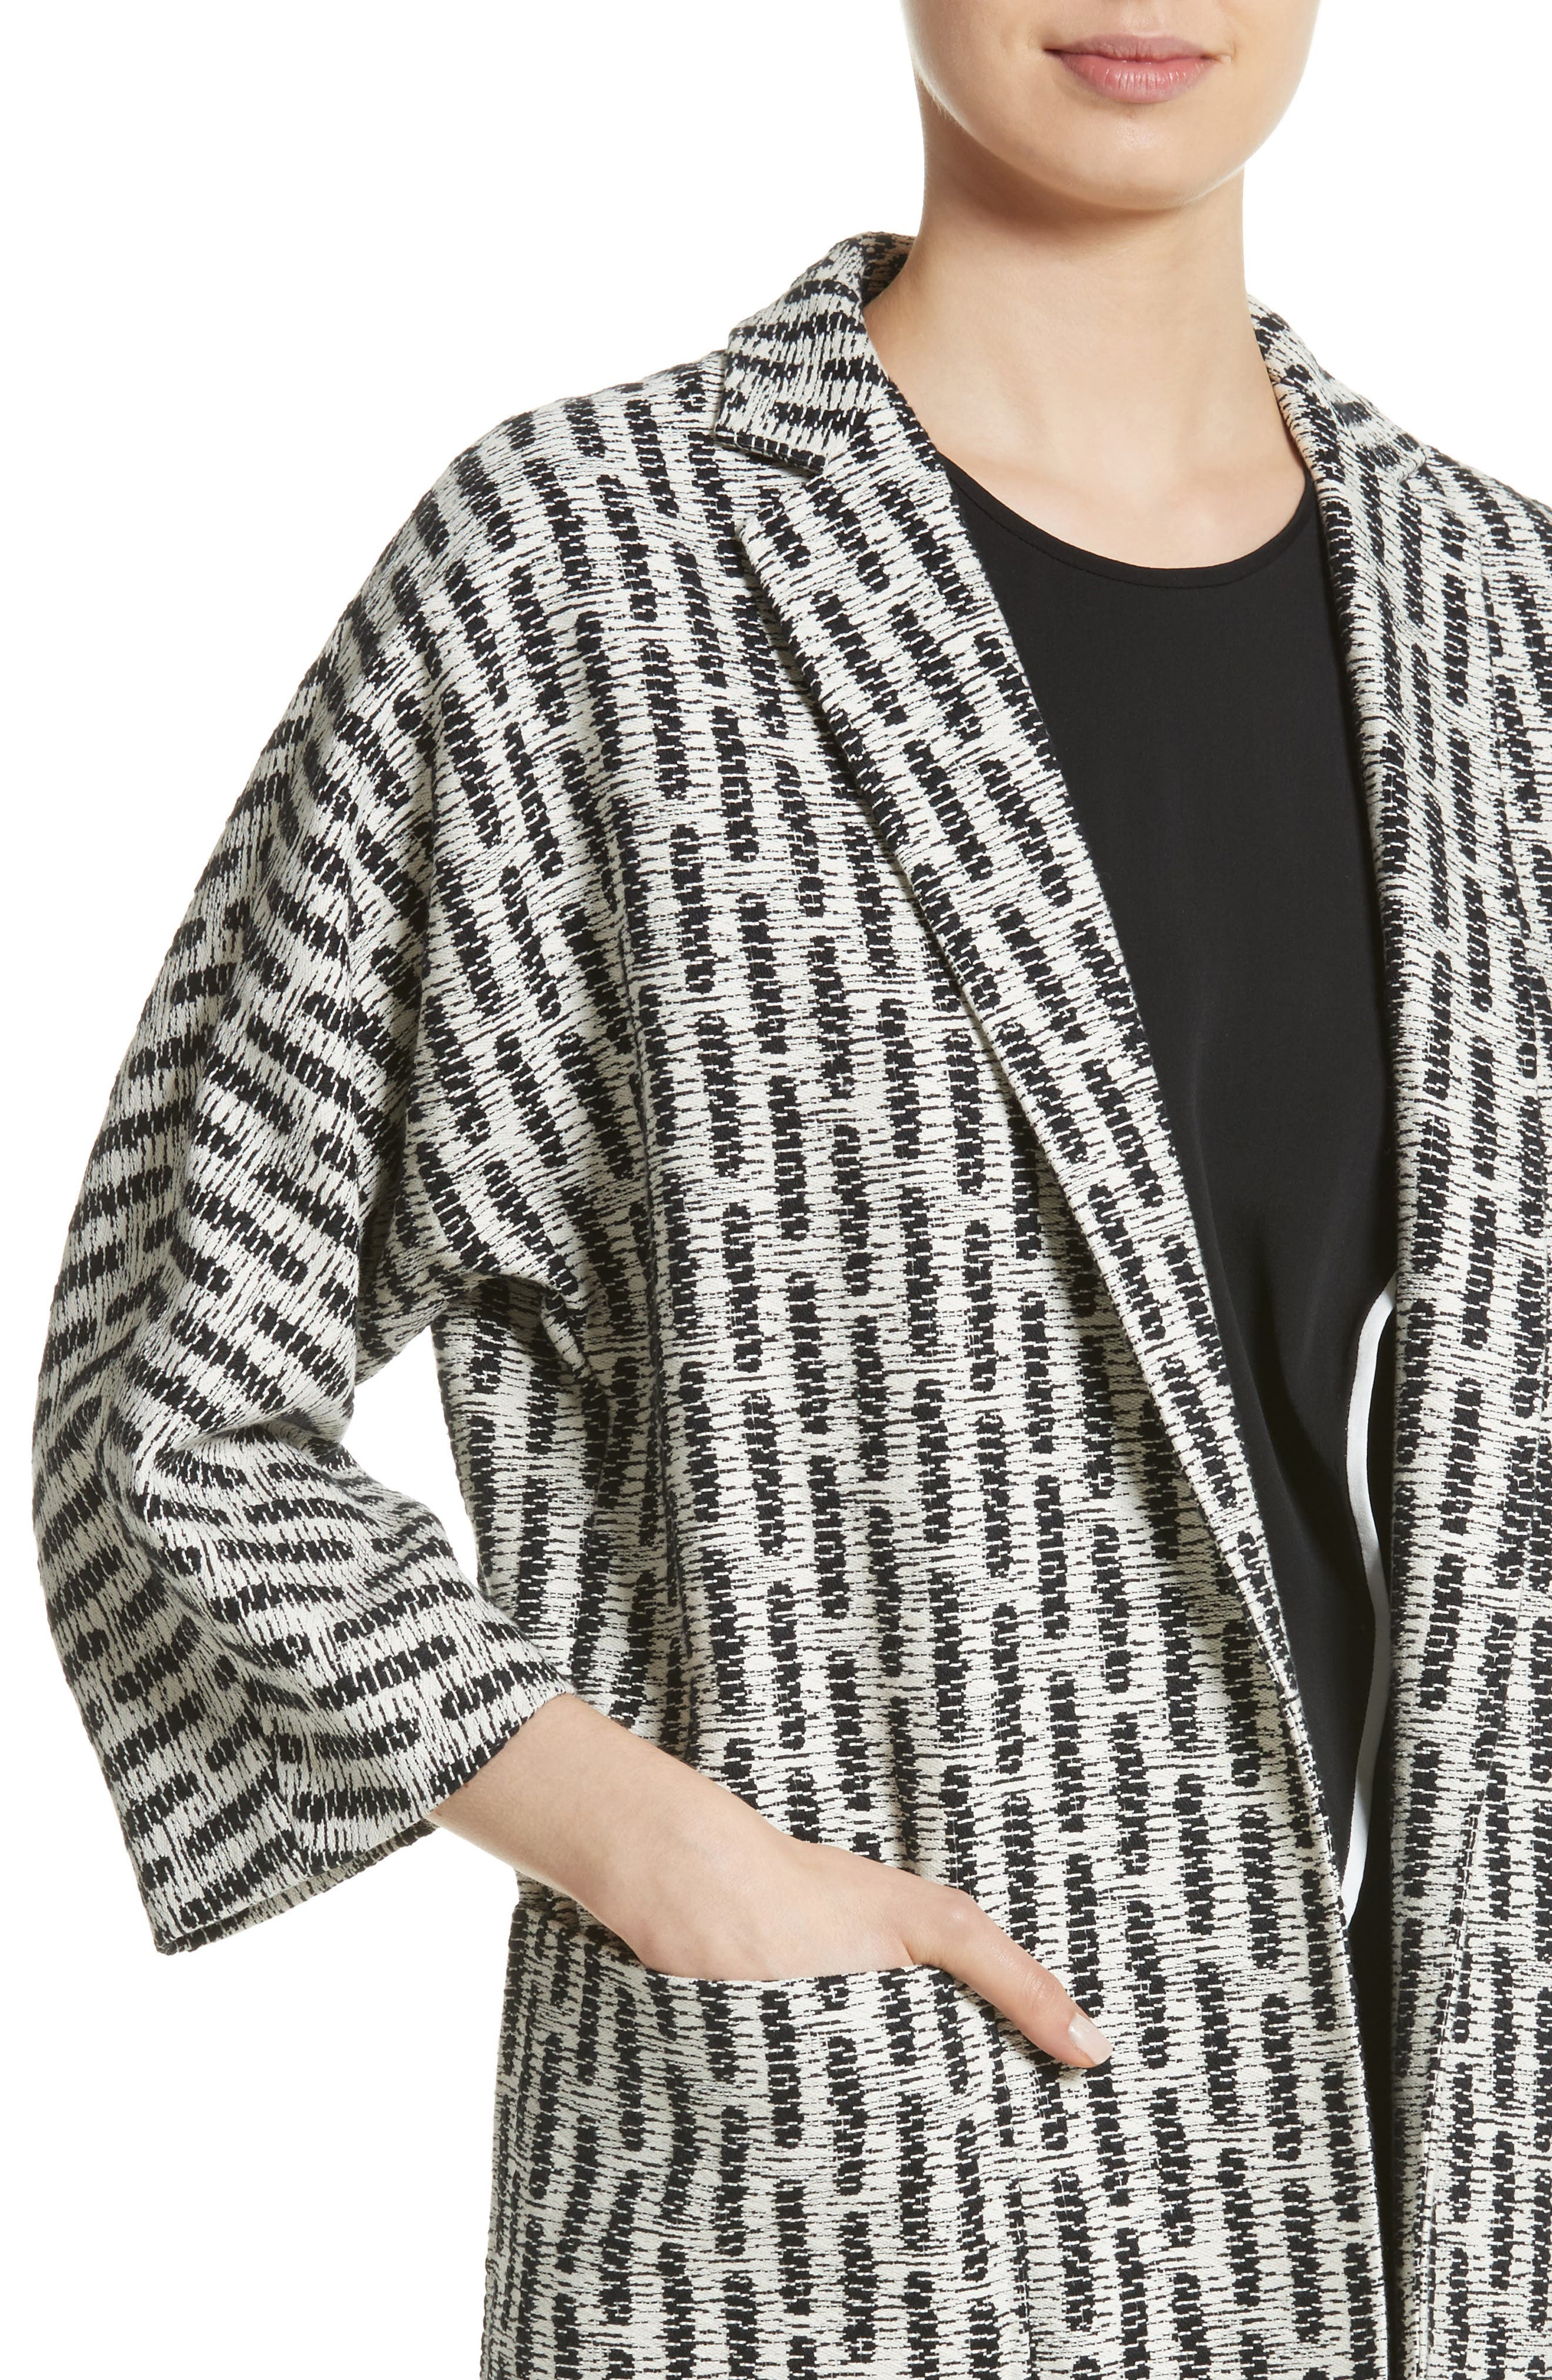 Ottone Jacquard Jacket,                             Alternate thumbnail 4, color,